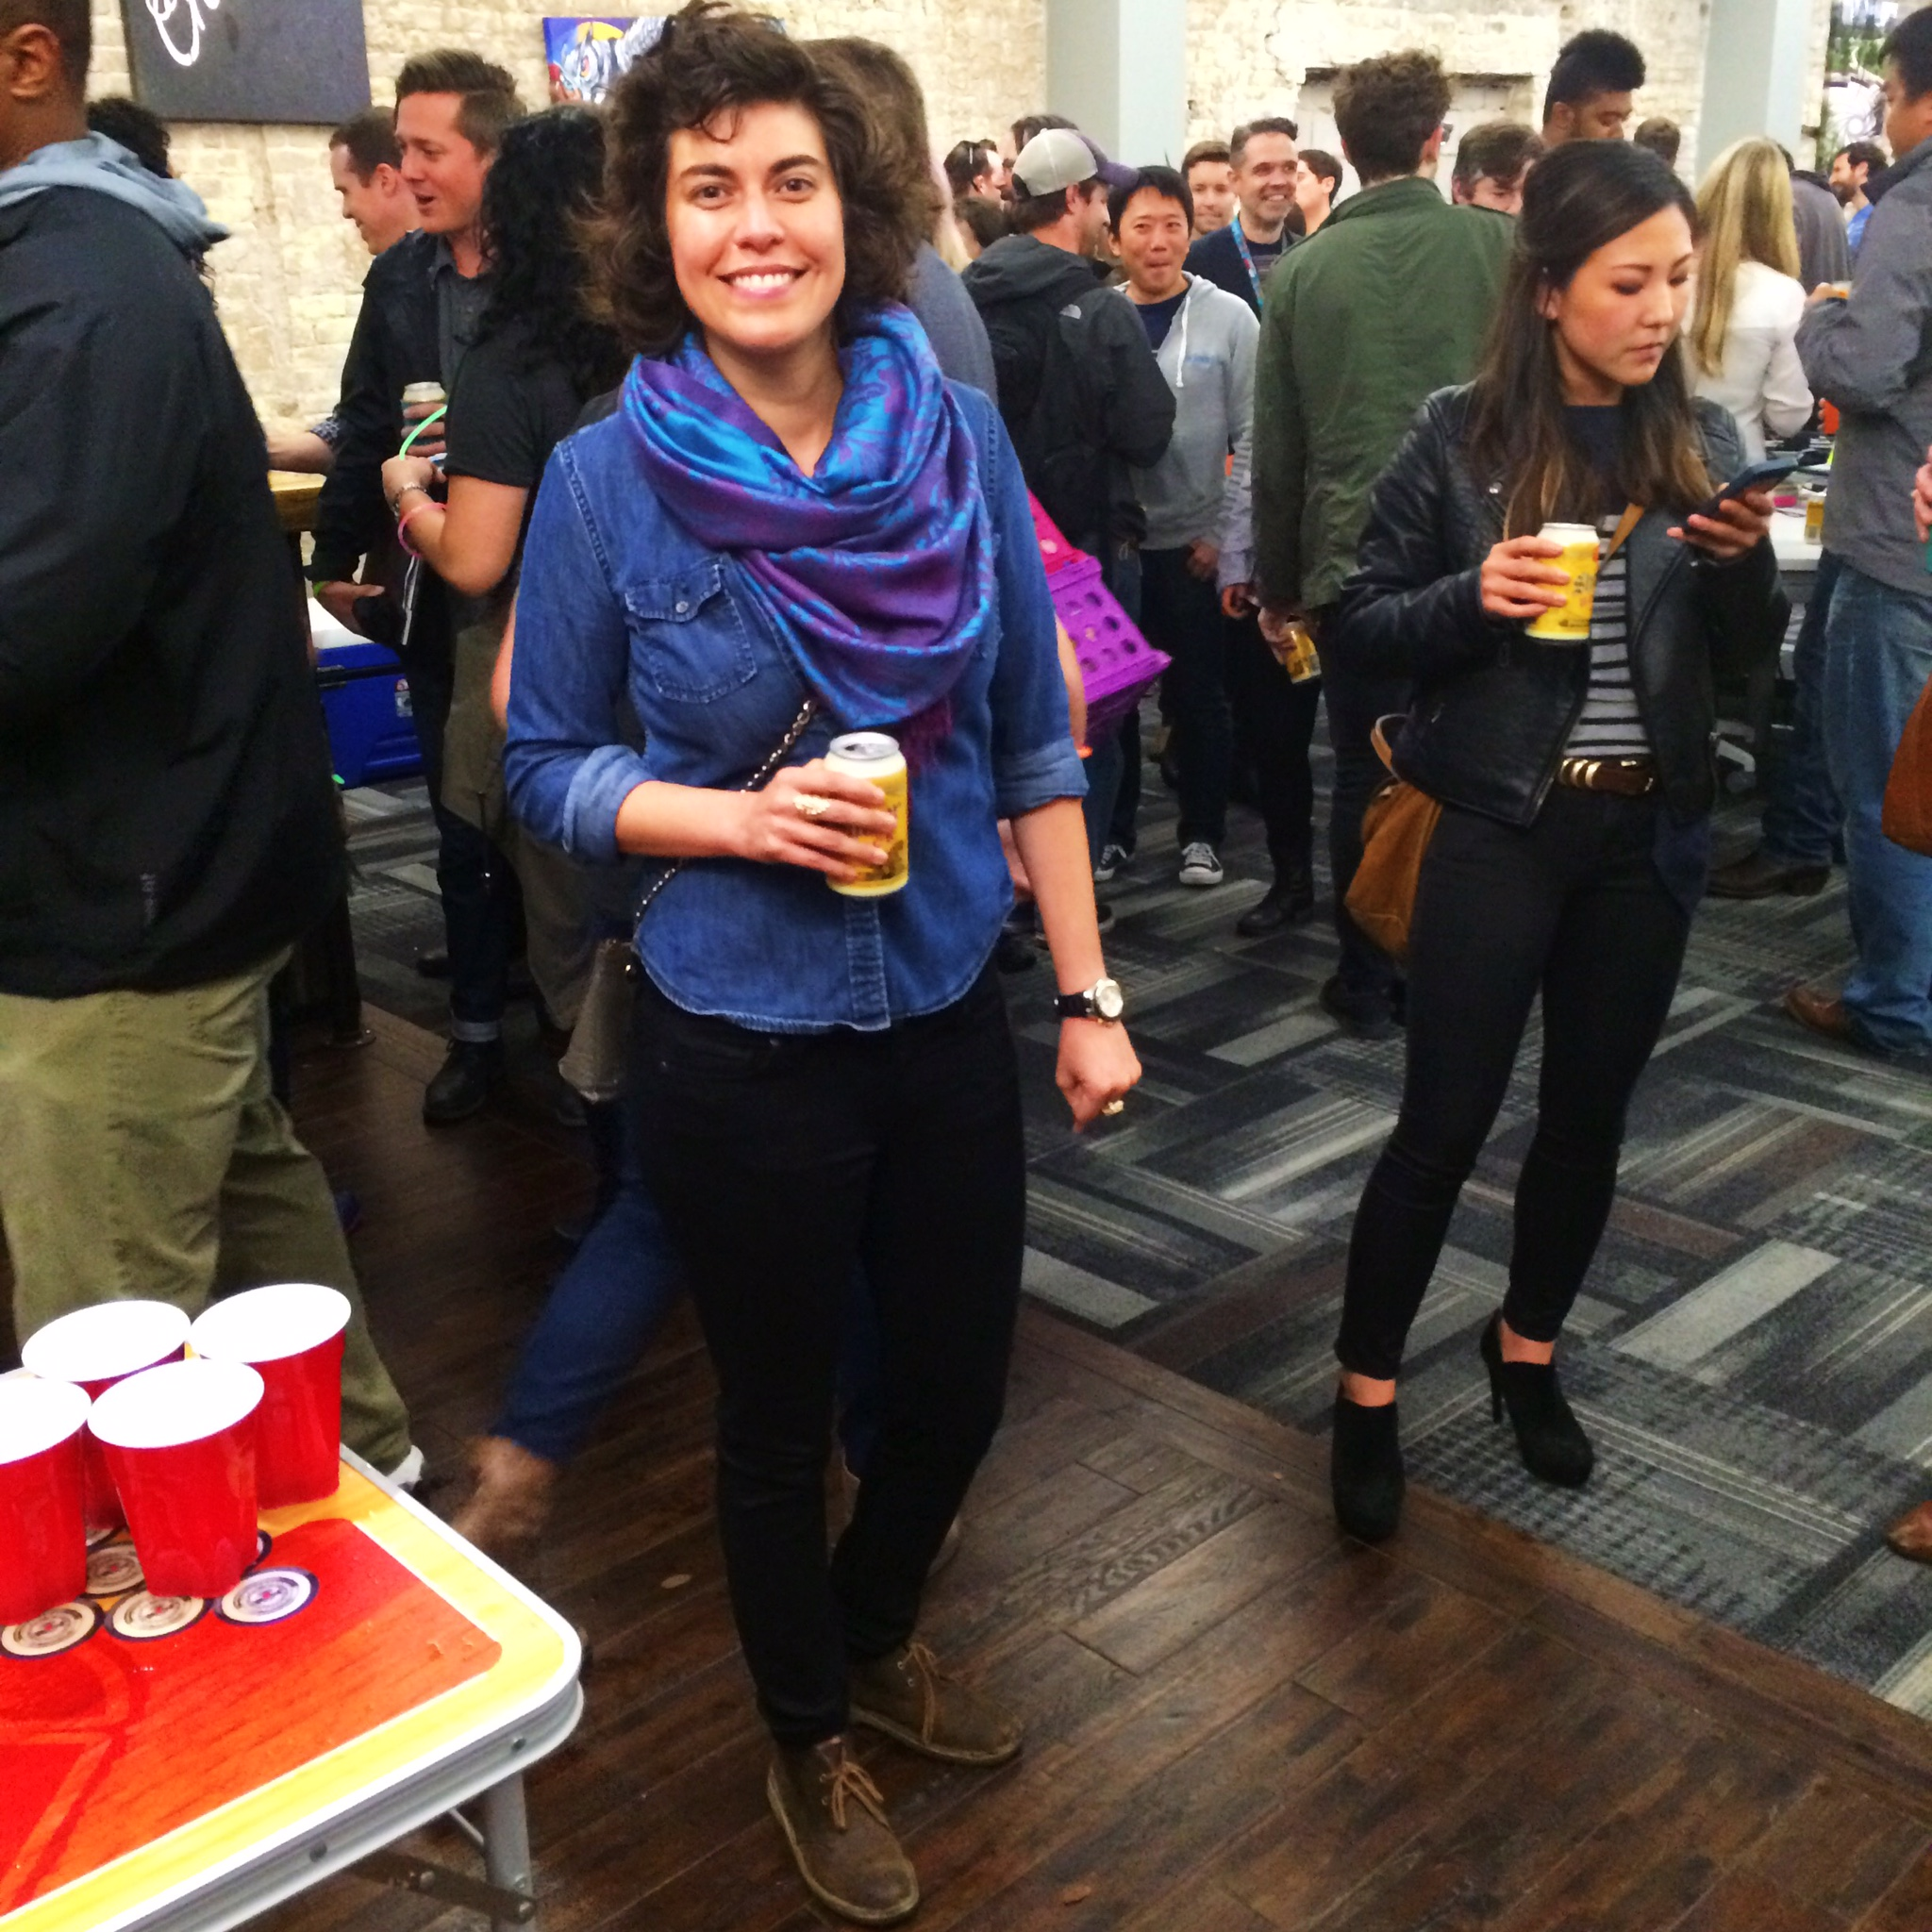 Raquel Greer Gordian captures an image of a woman's SXSW style.